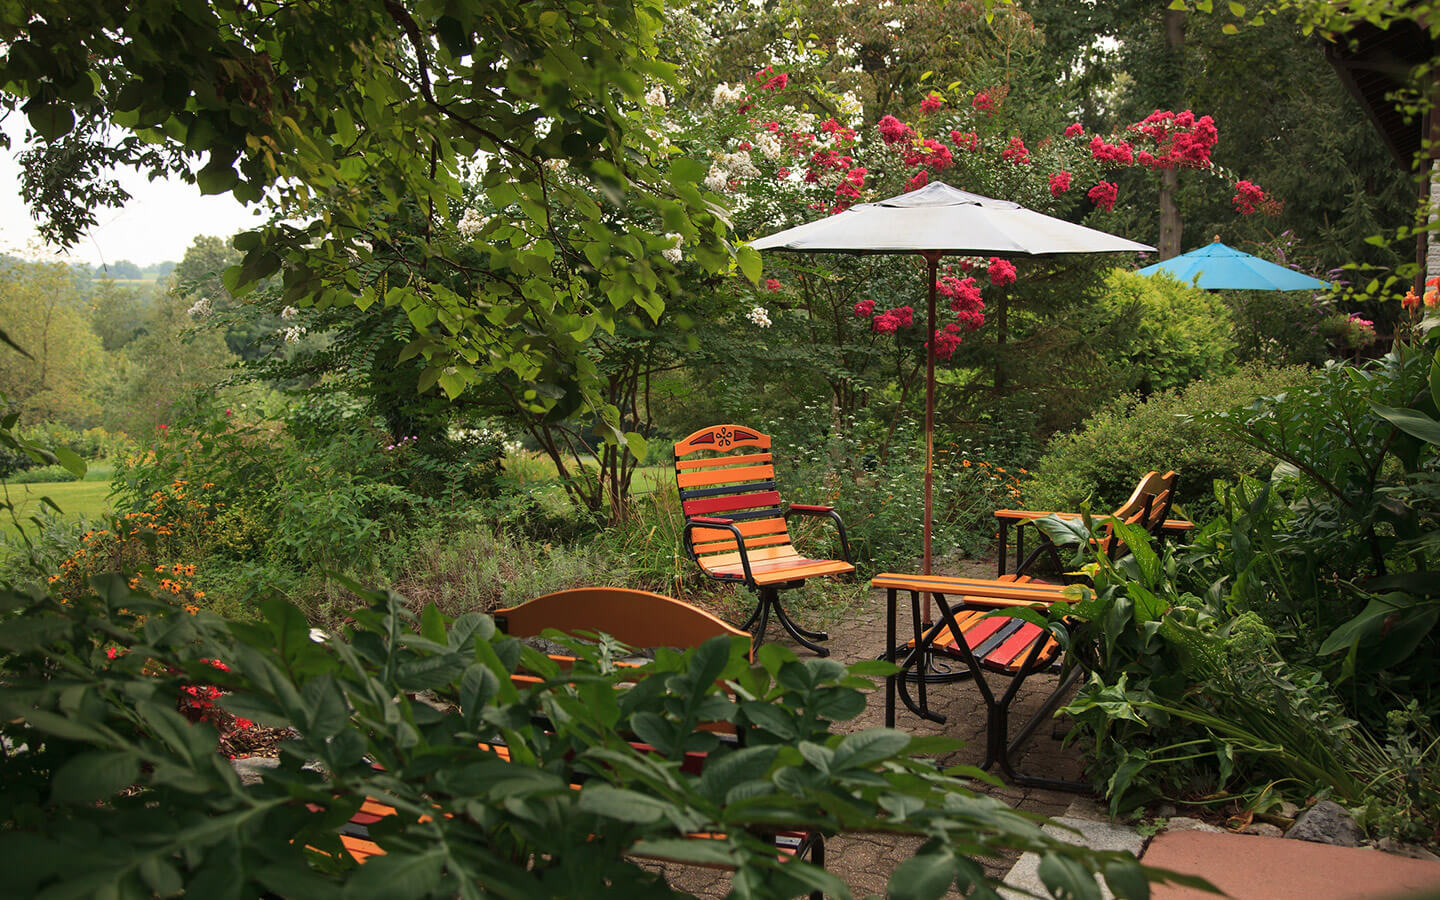 Seating in the gardens at our B&B in Amish Country PA